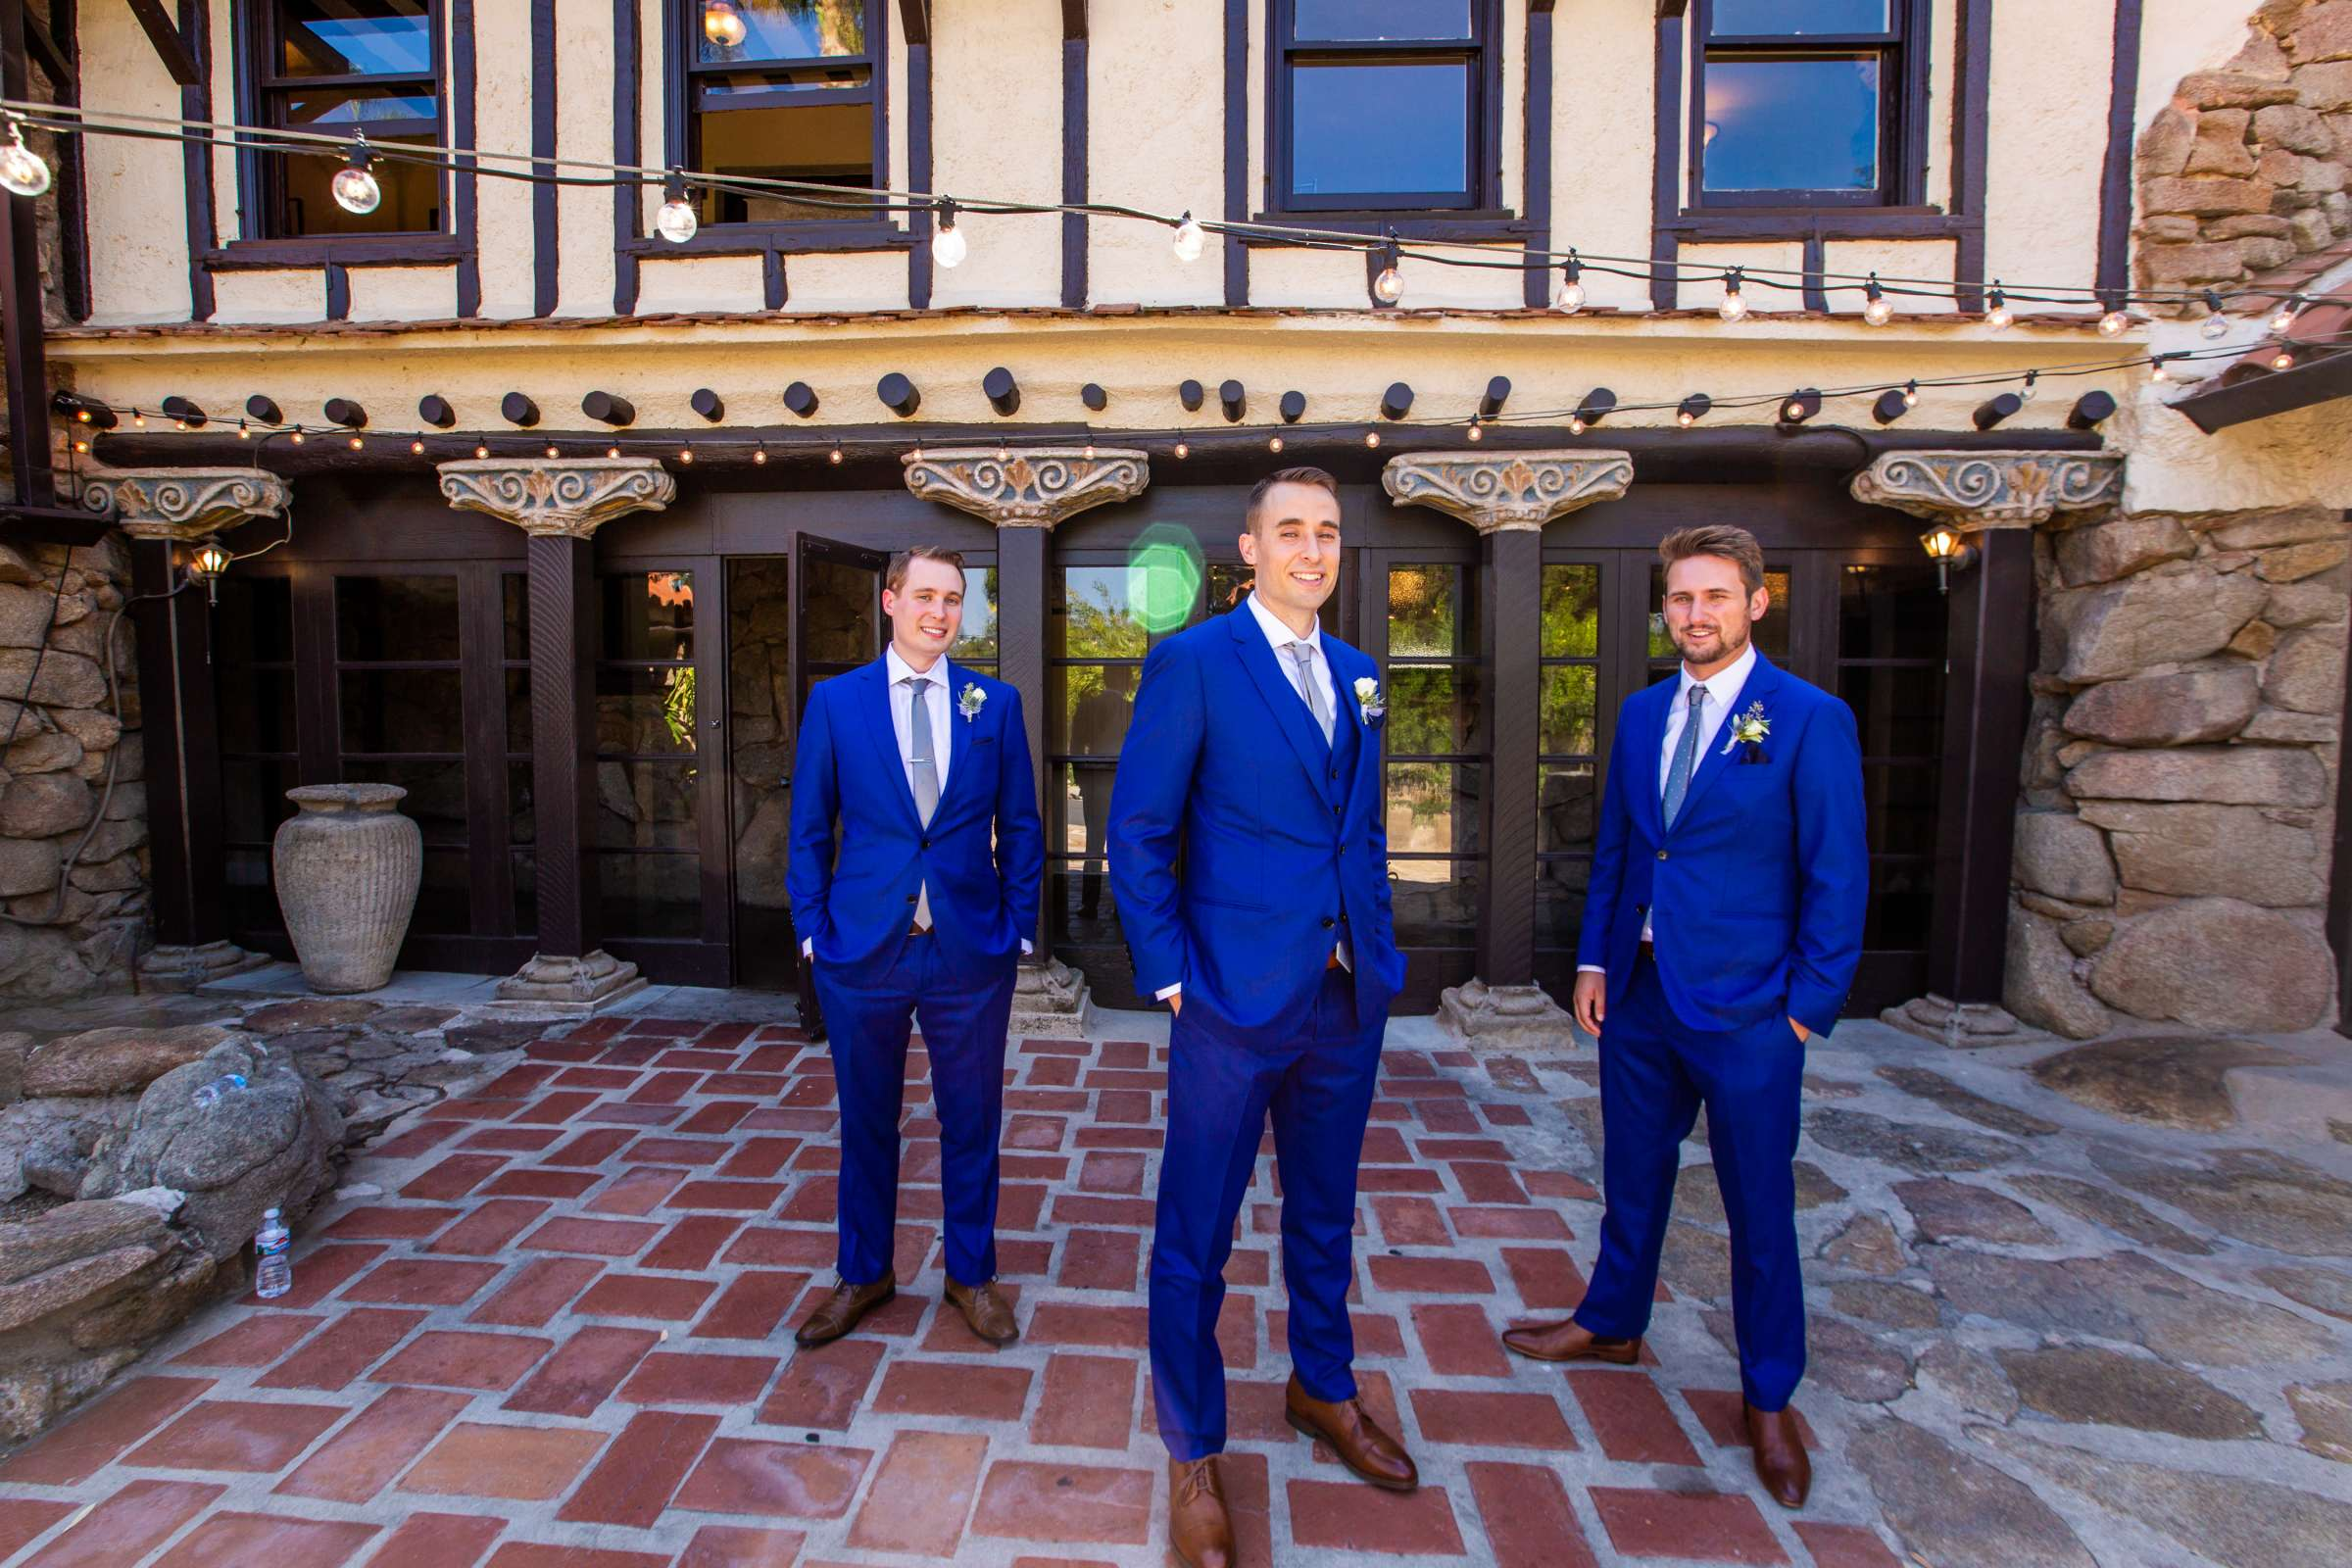 Mt Woodson Castle Wedding coordinated by I Do Weddings, Aya and Jared Wedding Photo #486916 by True Photography